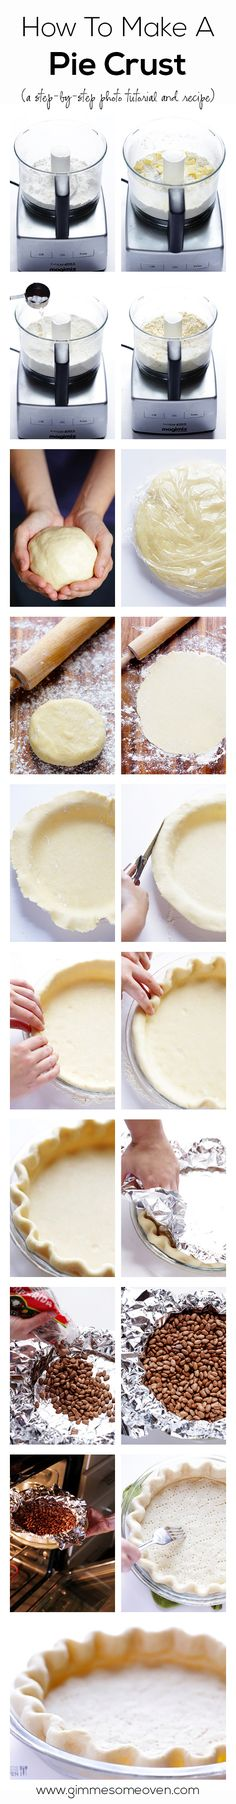 Step-by-step to make a beautiful pie crust. @Style Space & Stuff Blog Ballard this is super helpful!!